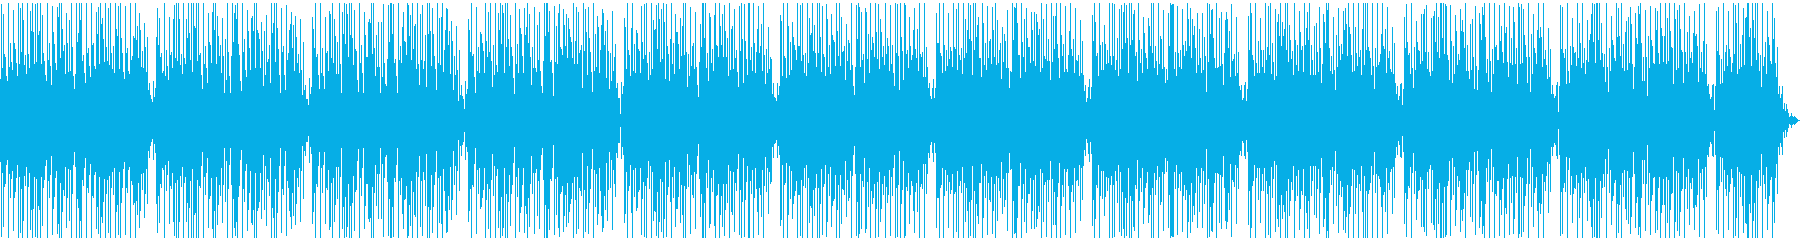 Stylish and bright guitar pops's reproduced waveform